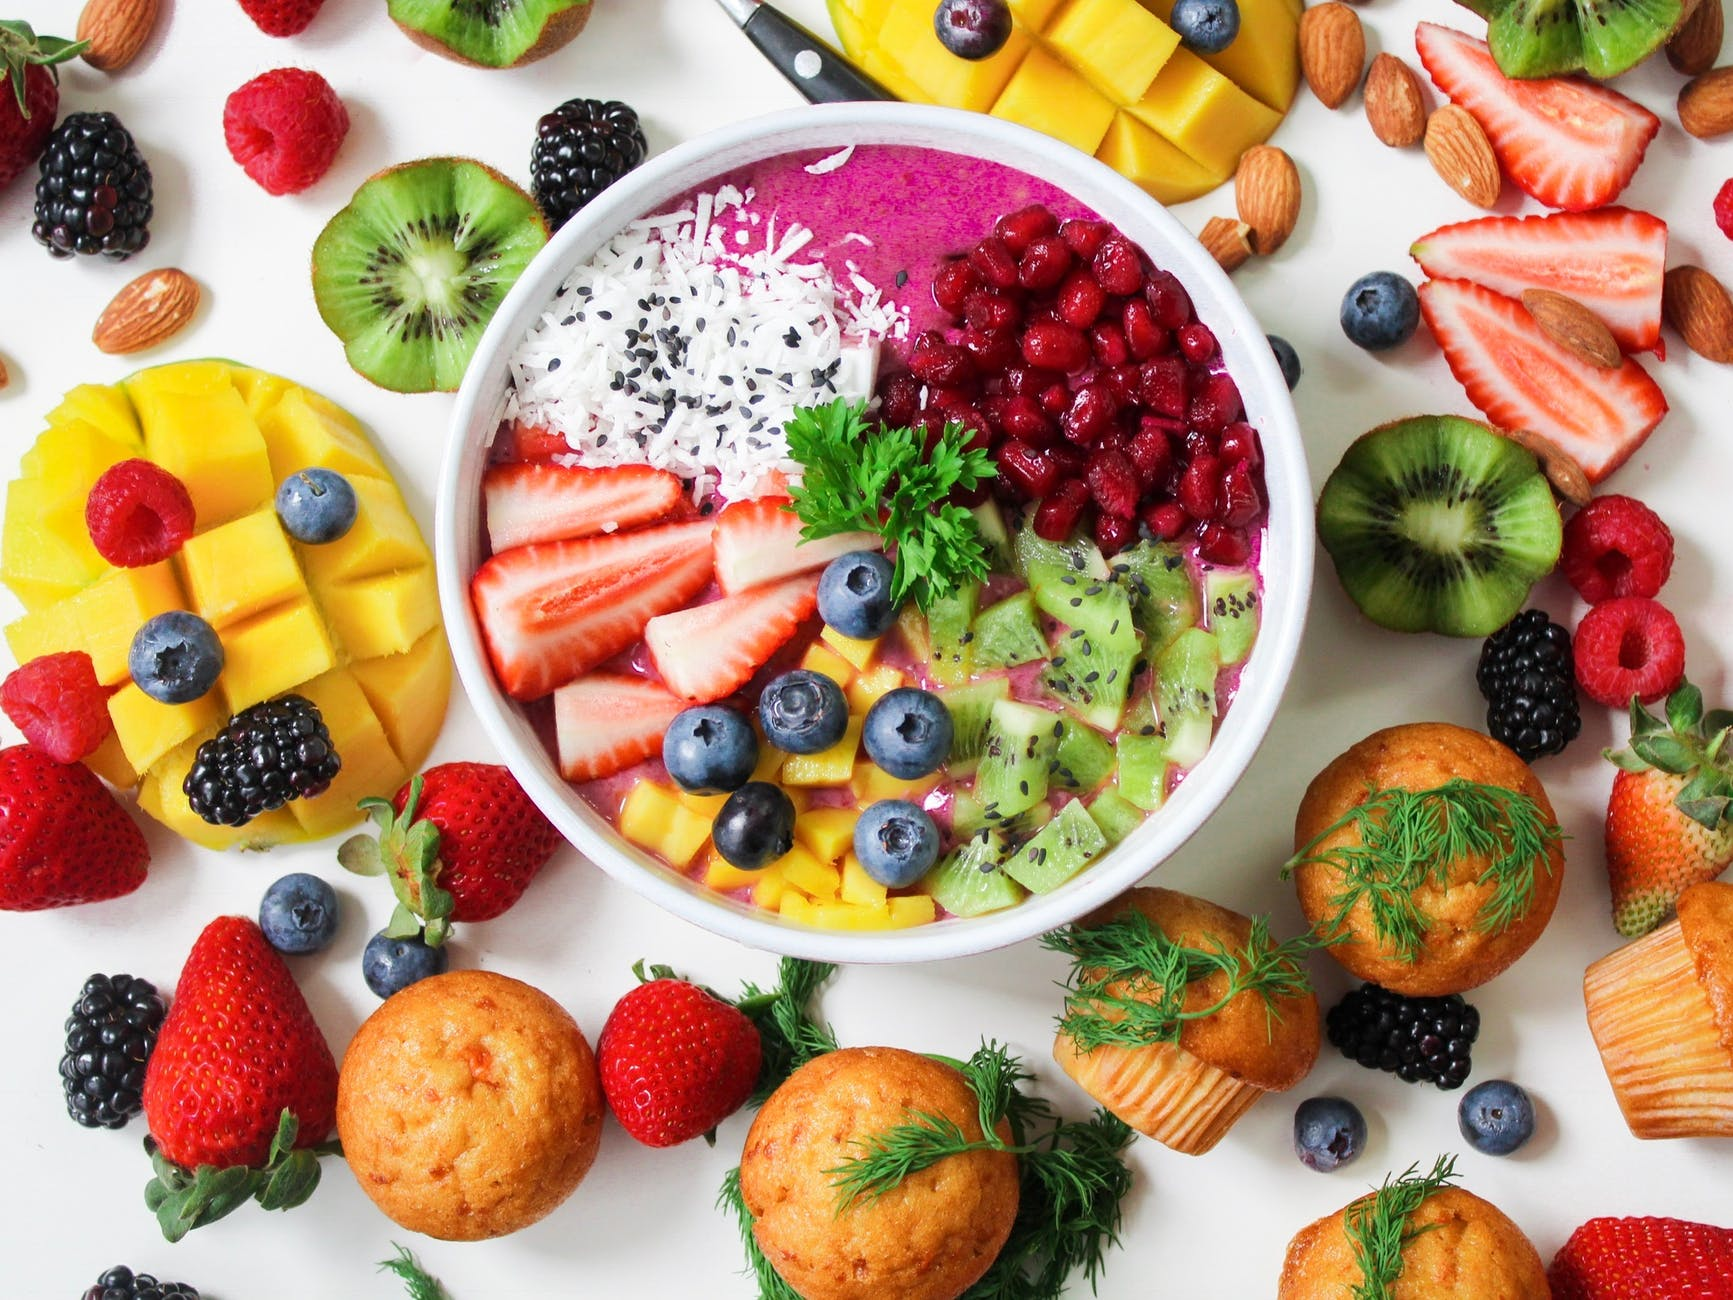 A selection of fruit on a table surrounding a bowl of selection of fruit. Also some muffins